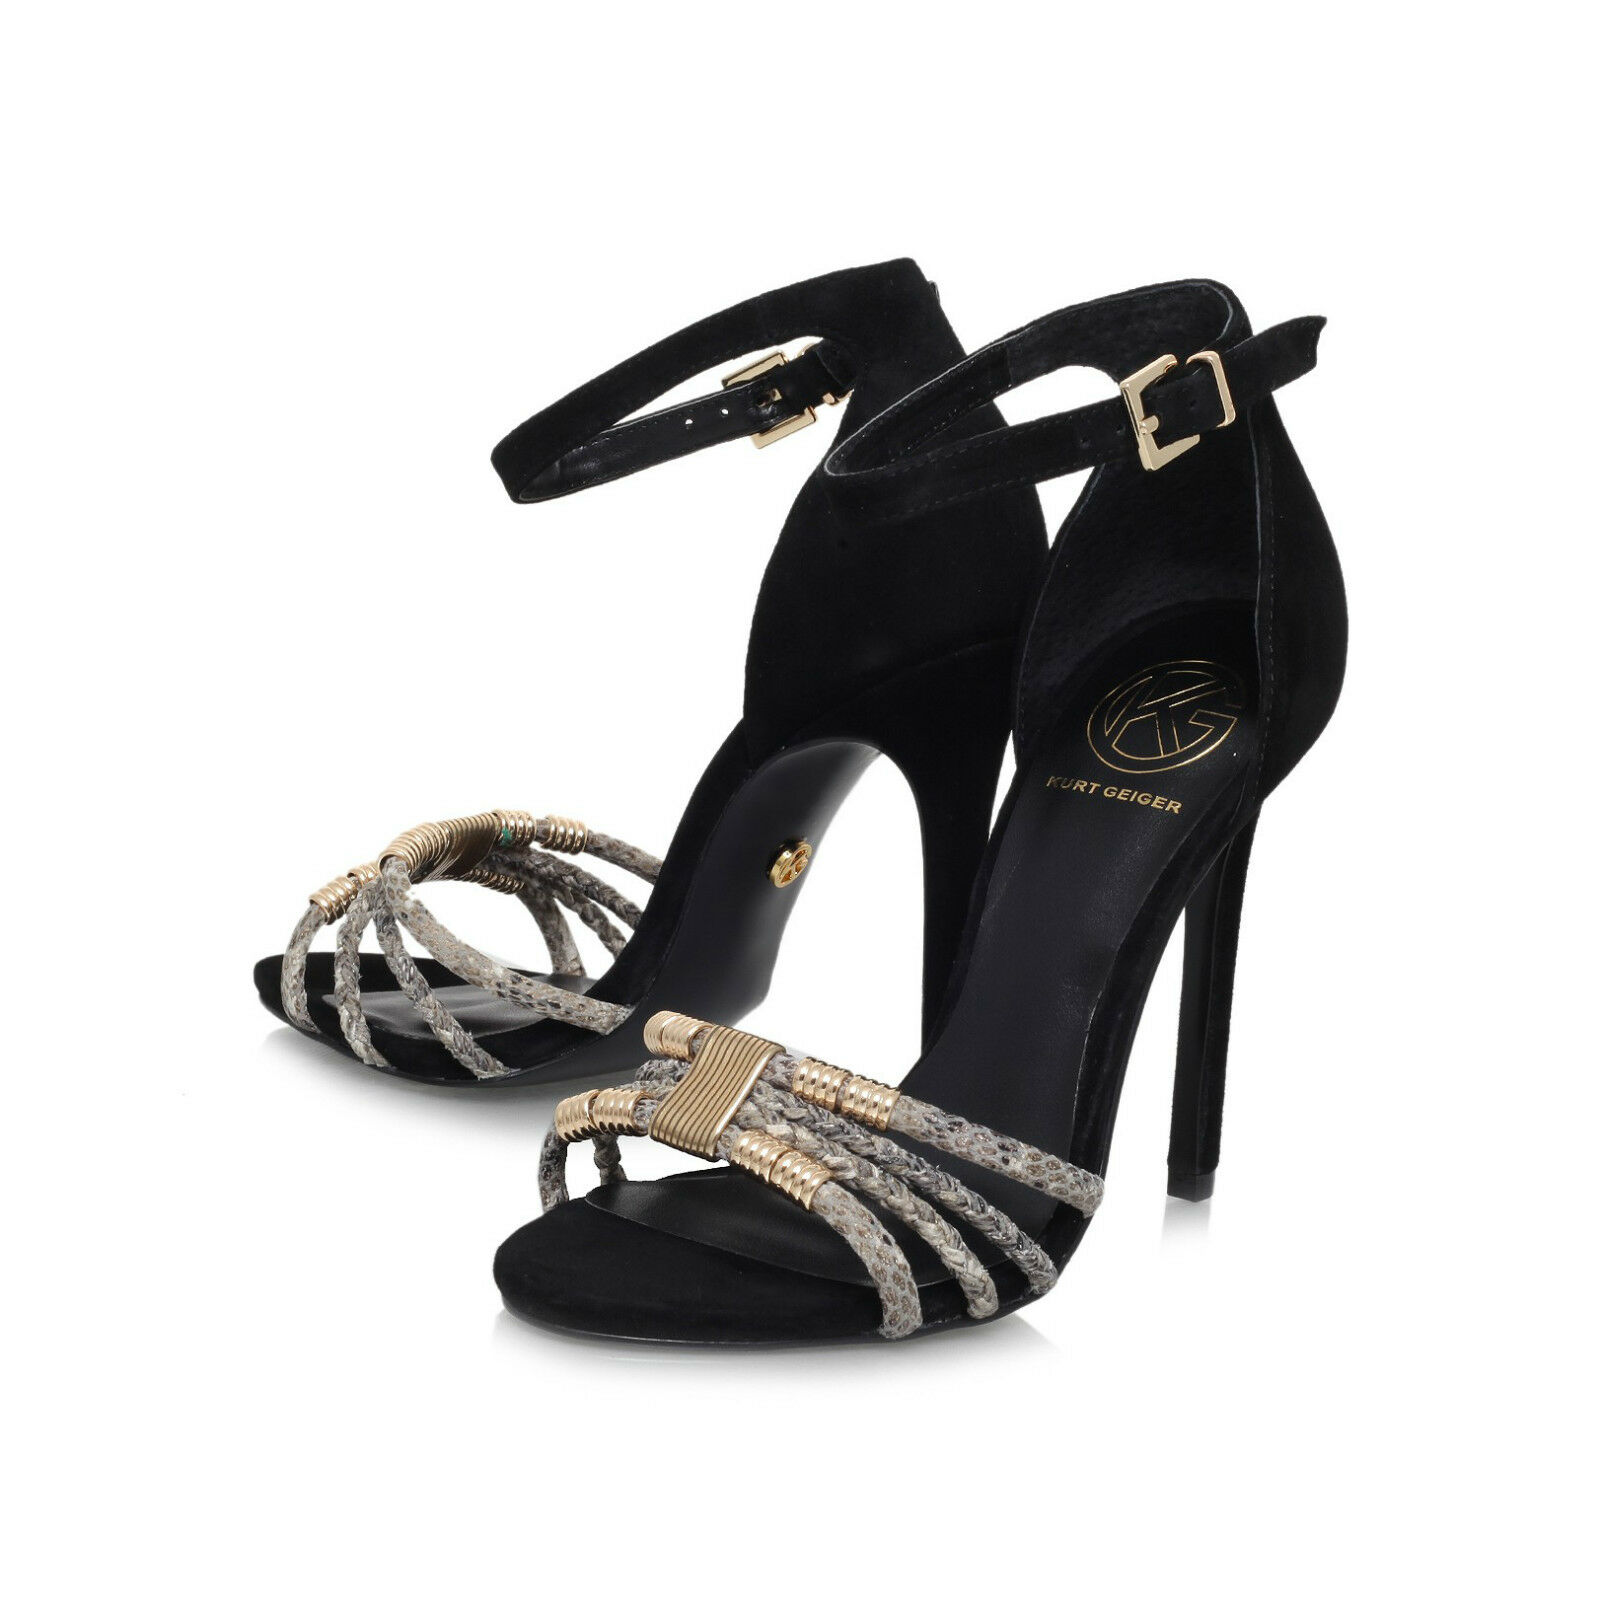 KG Schuhe SANDALS /   STILETTO / PEEP TOE / STILETTO  / ANKLE STRAP . UK 7  EU 40 5ddf87